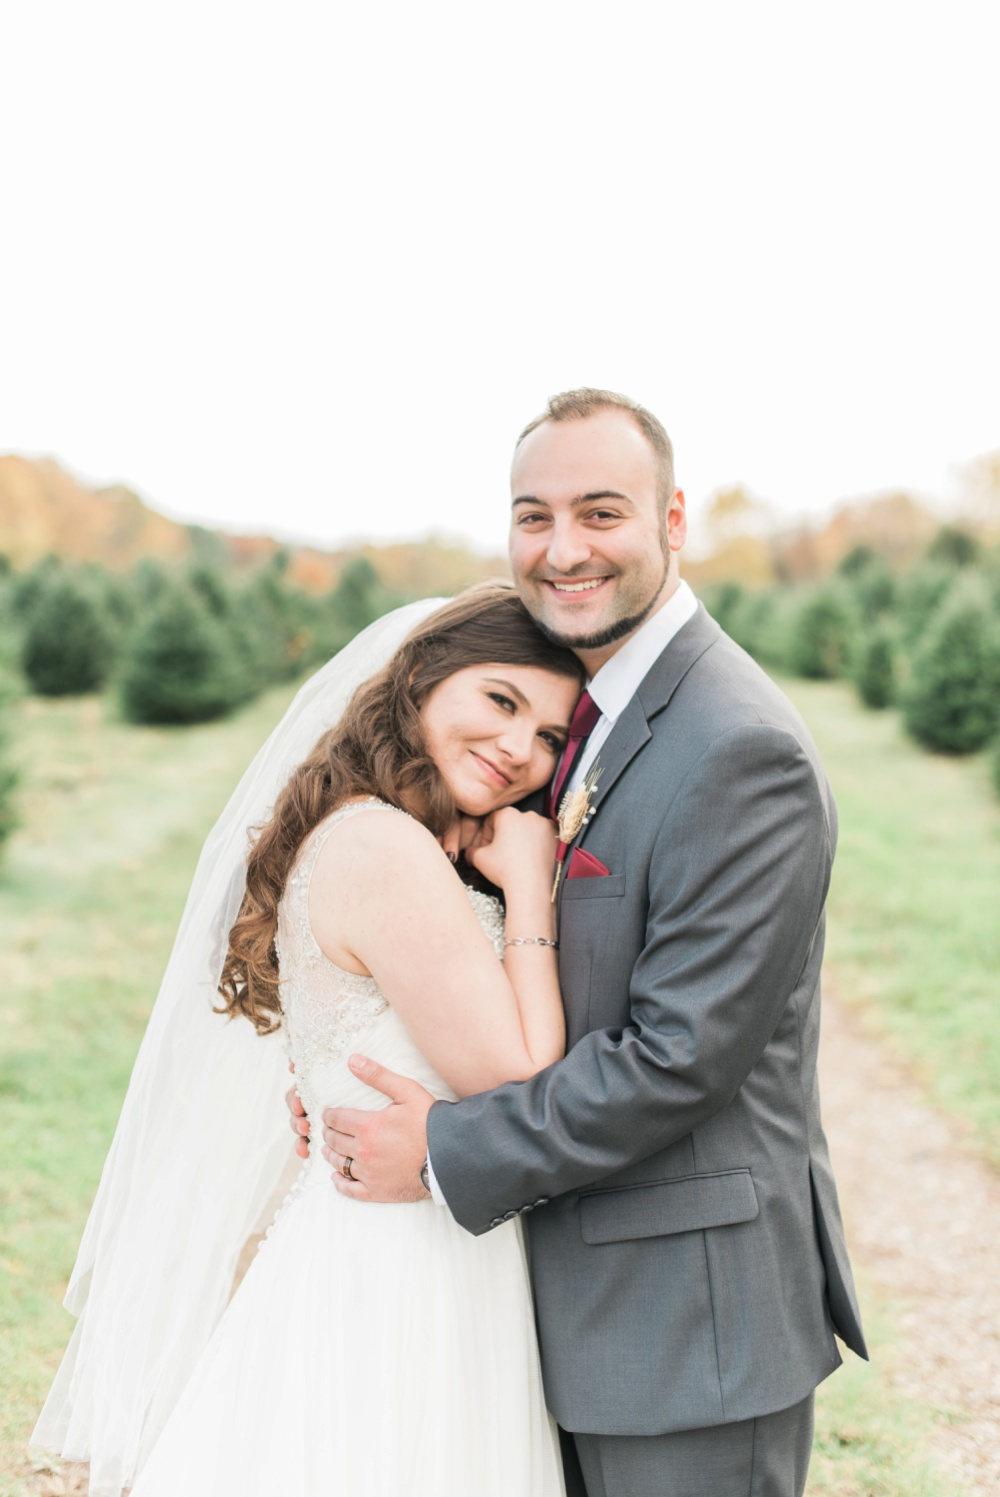 ricciardis-tree-farm-wedding-wadsworth-ohio-lauren-ryan_0132.jpg